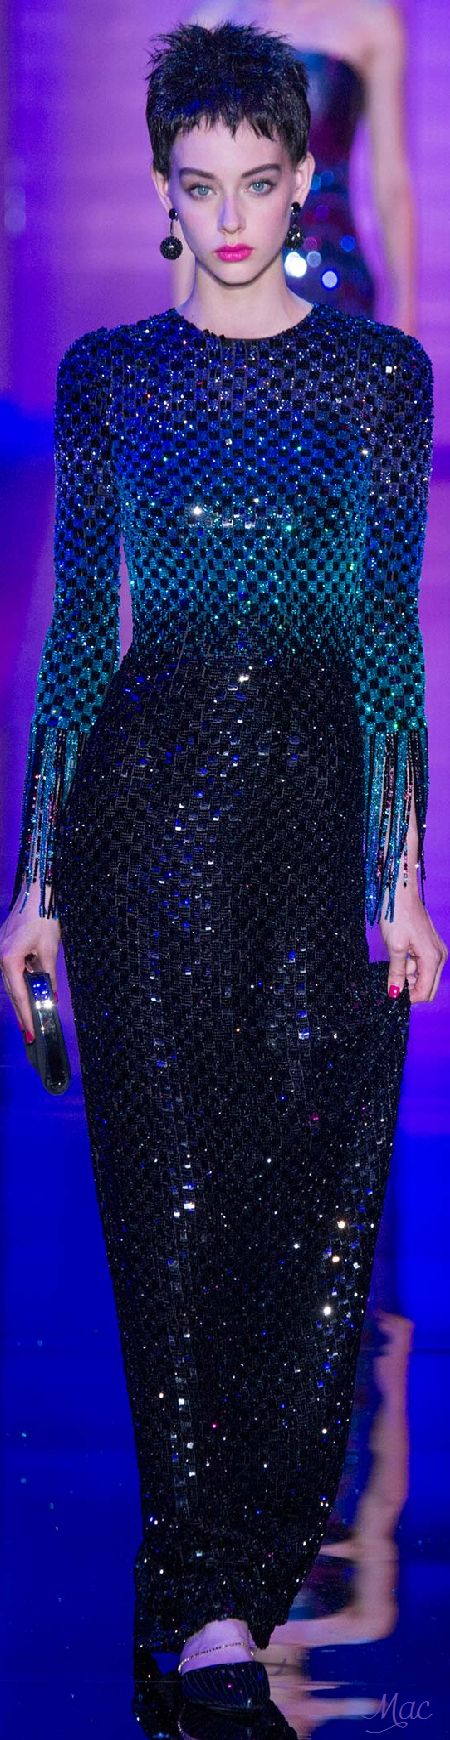 Armani Privé ~ Couture Shades of Blue + Black Sequinned Gown, Fall 2015